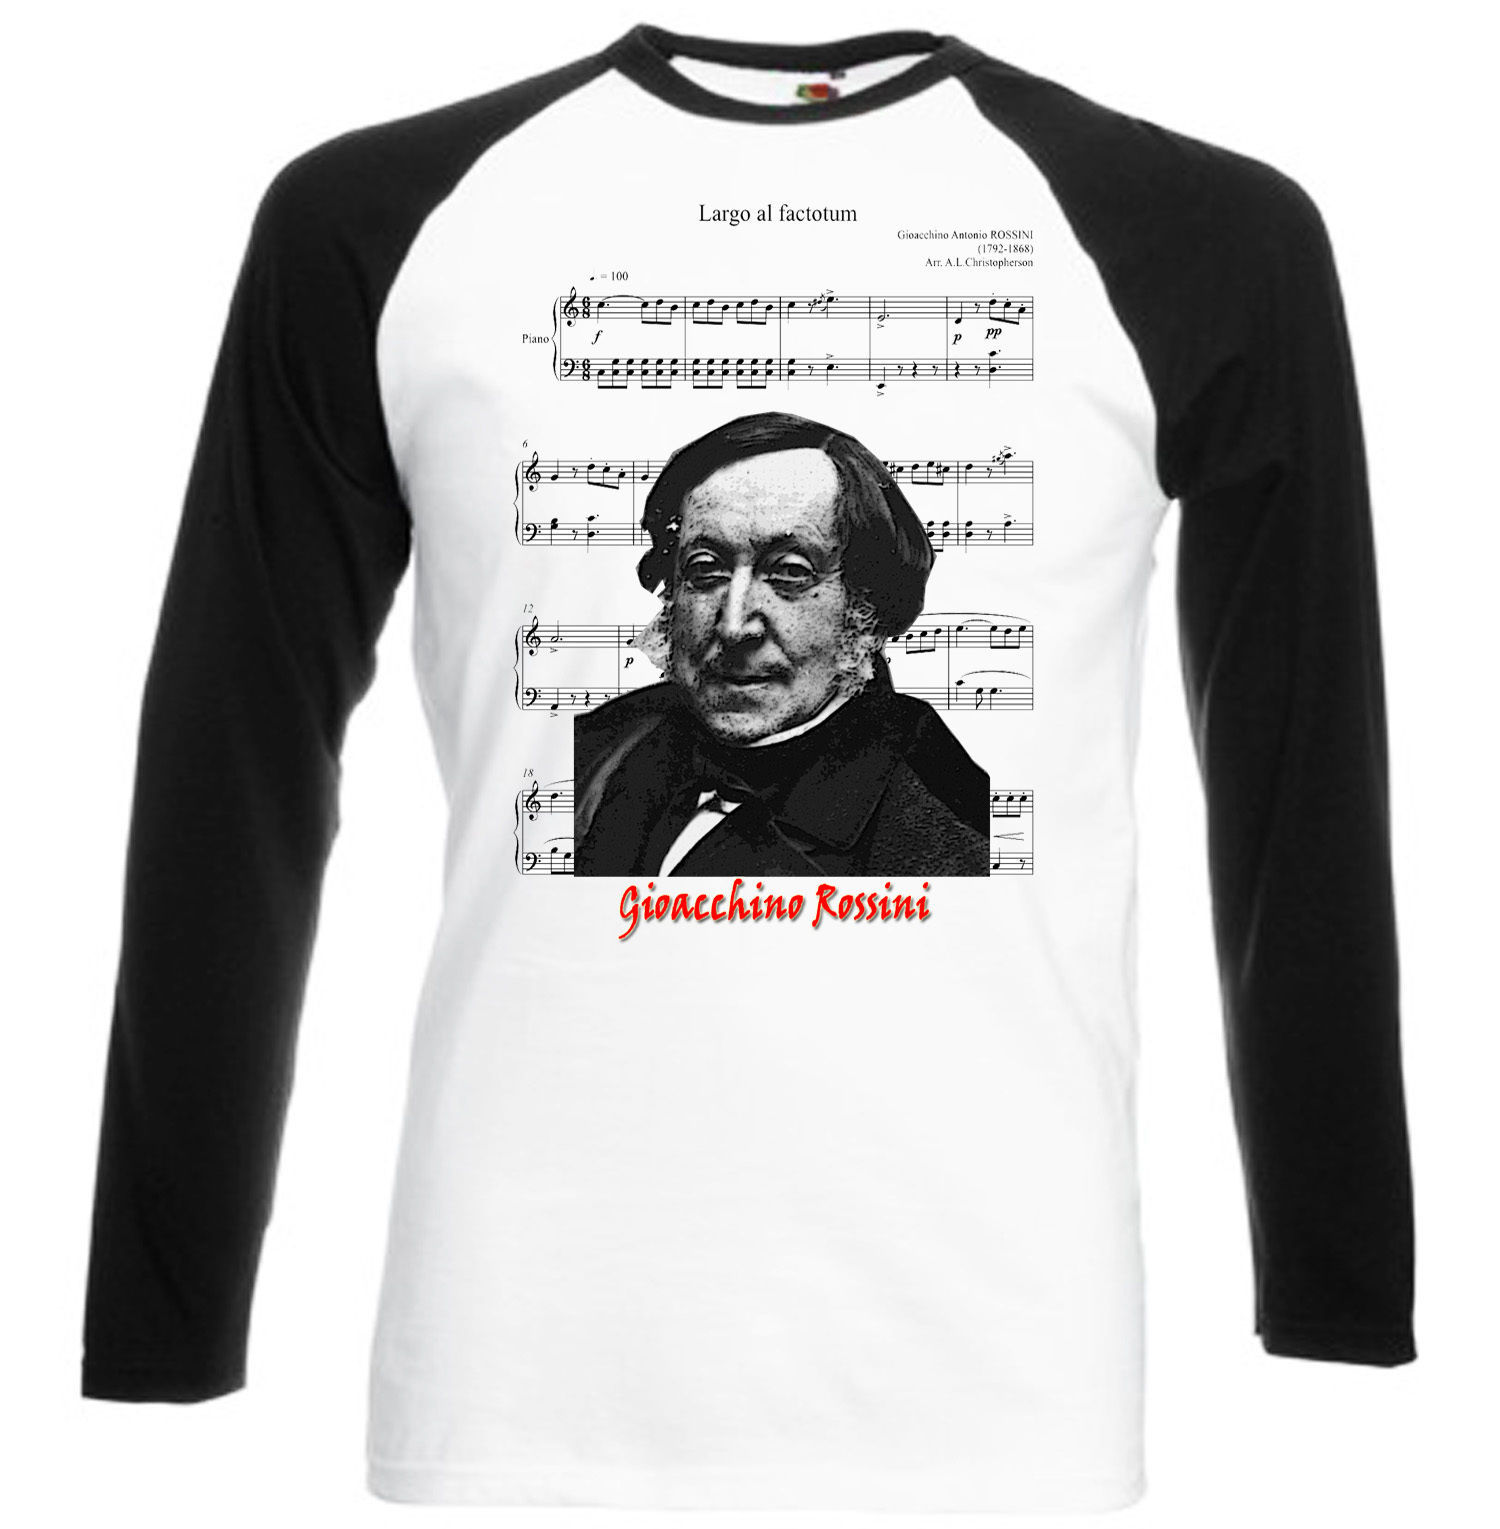 Primary image for GIOACCHINO ROSSINI - NEW GRAPHIC BLACK SLEEVED BASEBALL T-SHIRT S-M-L-XL-XXL